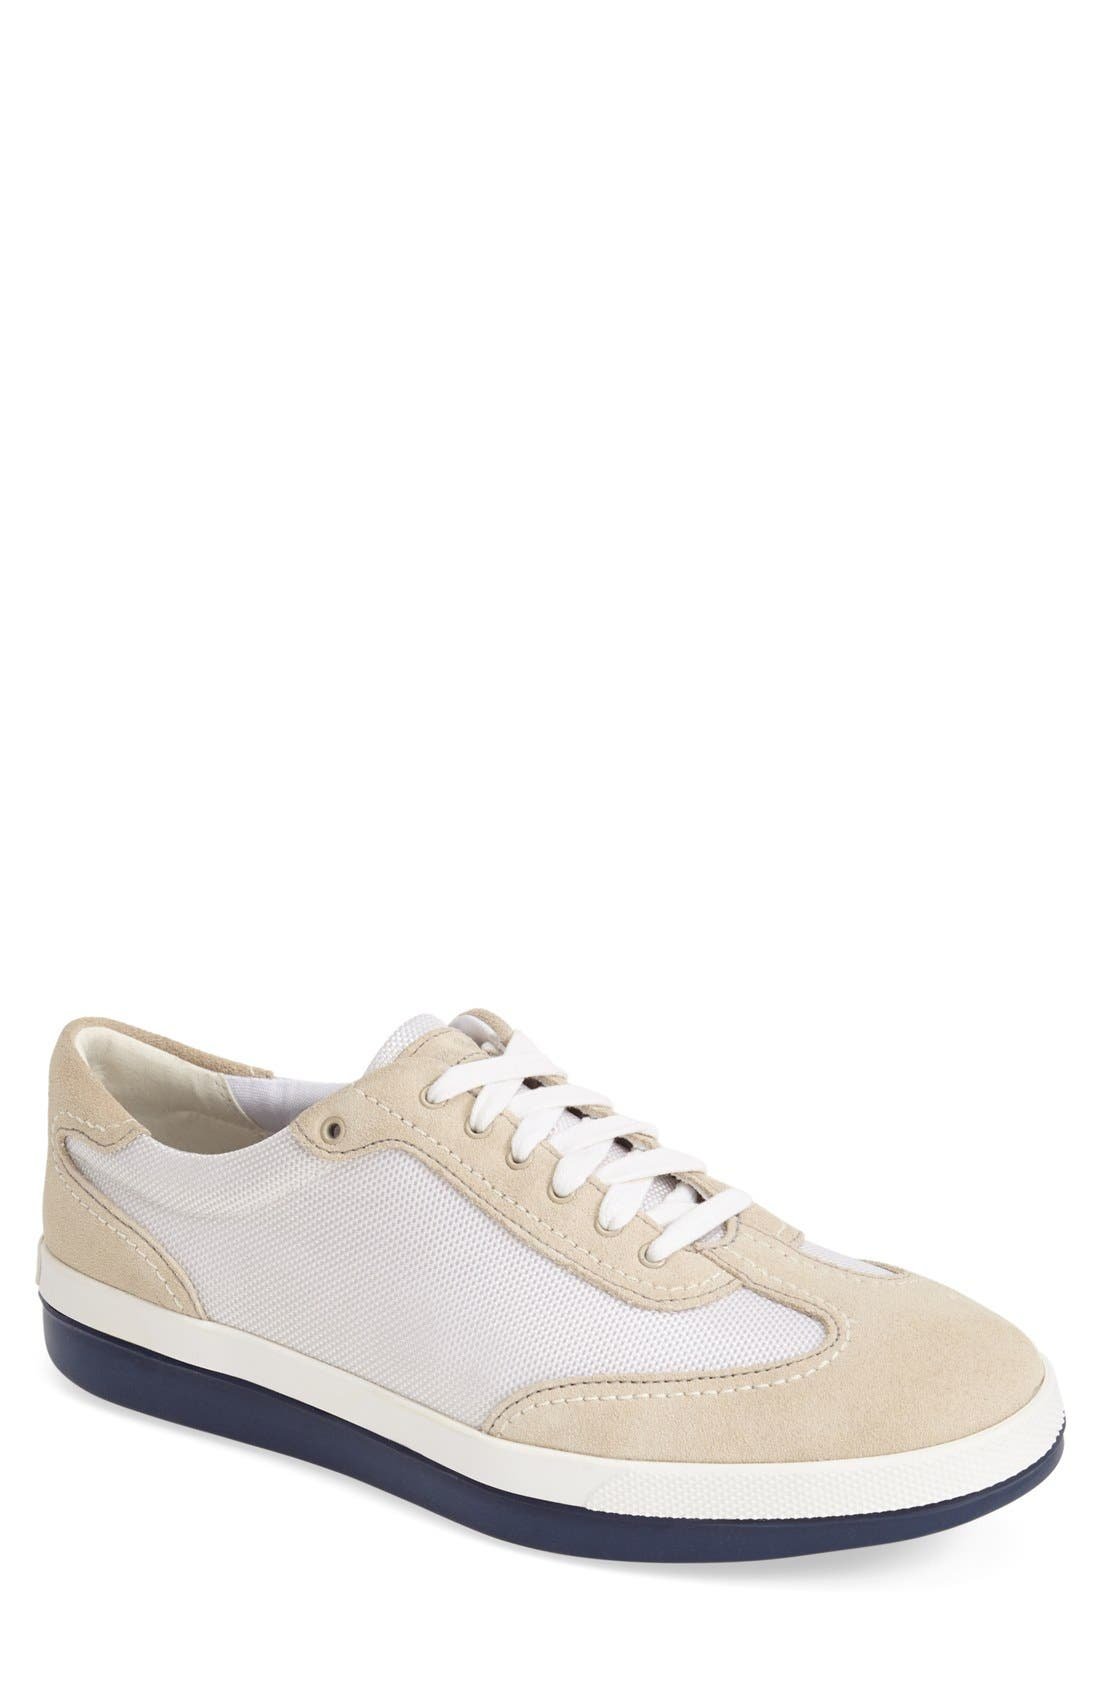 TOMMY BAHAMA 'Relaxology Collection - Roaderick' Sneaker, Main, color, 100